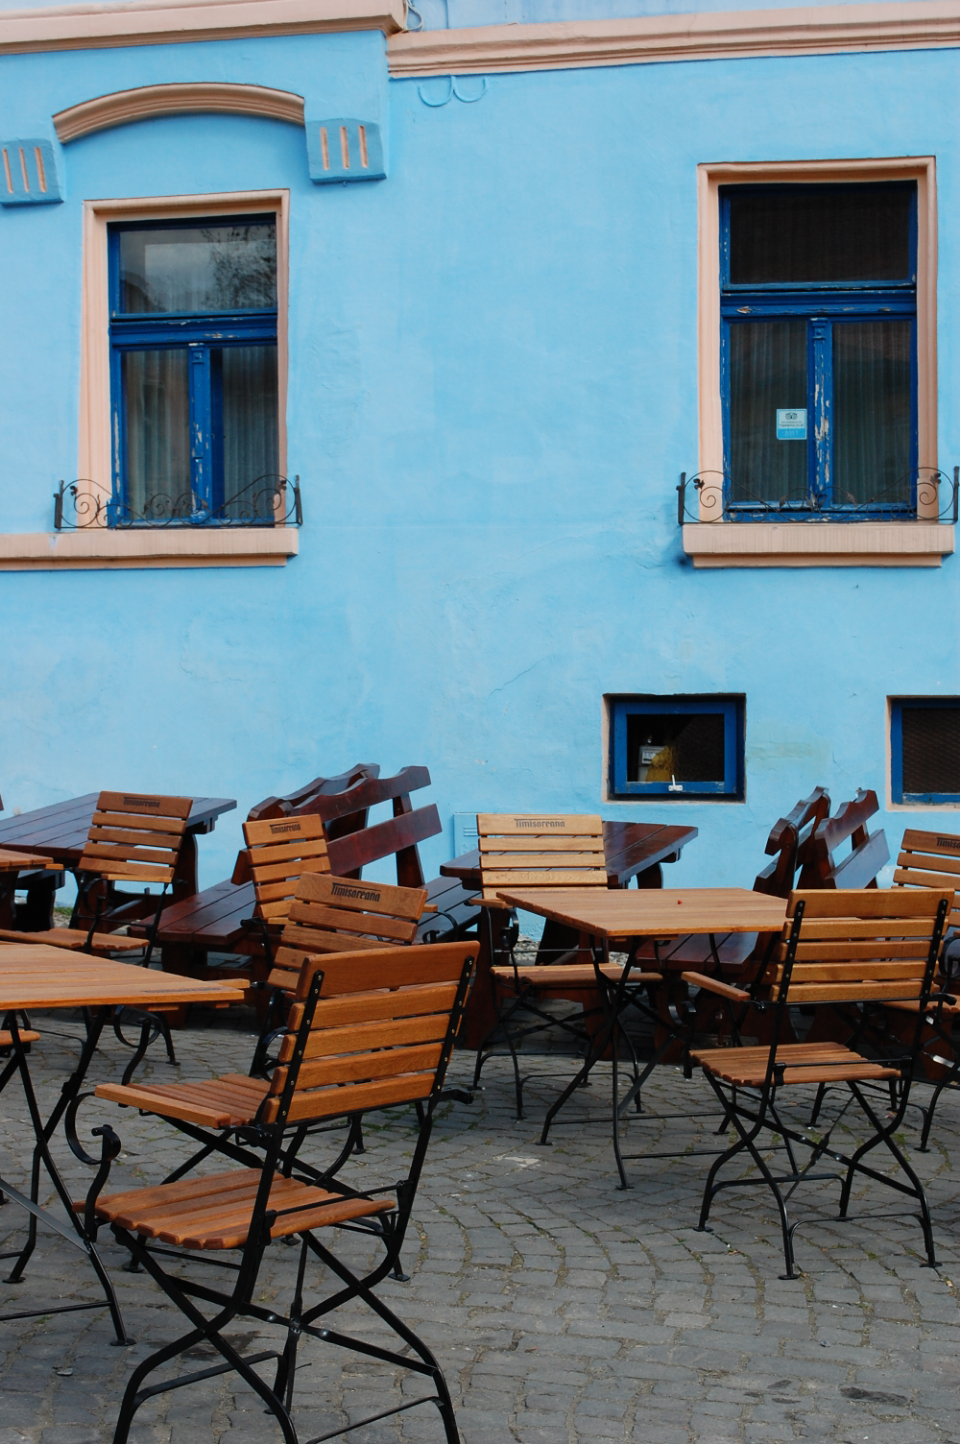 chairs outdoor dining restaurant architecture travel